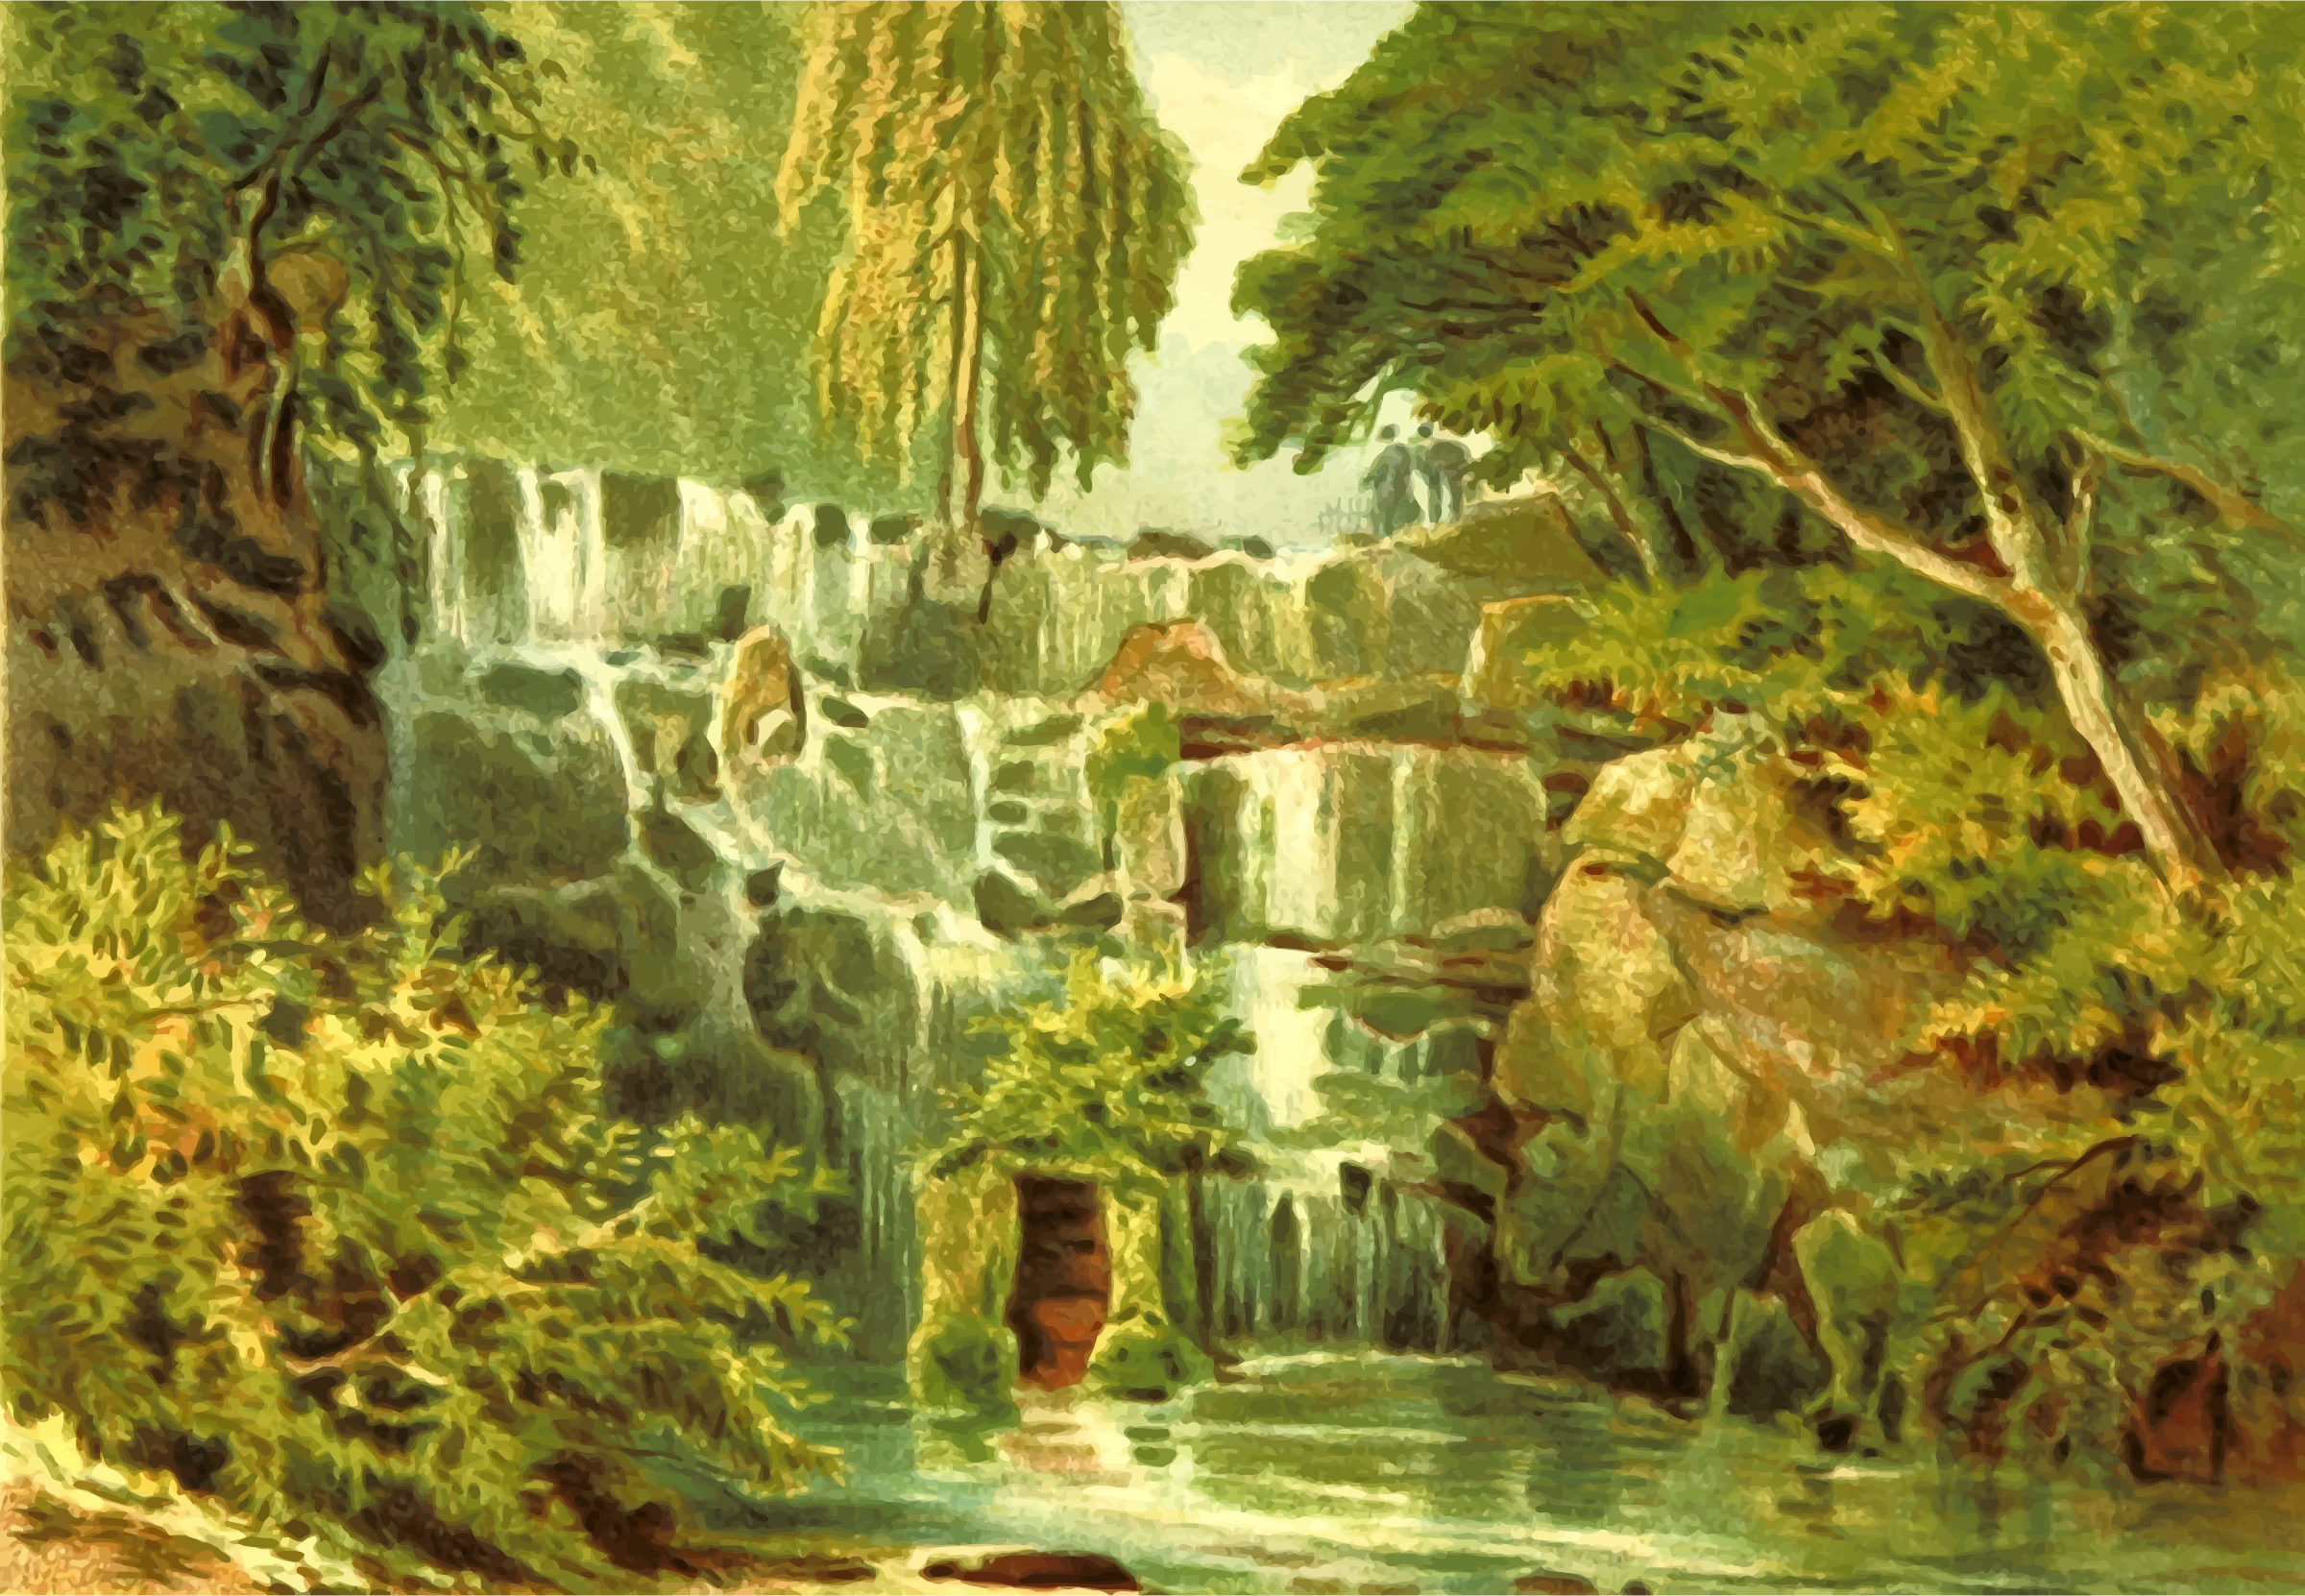 Cascade at Virginaia Water by Firkin